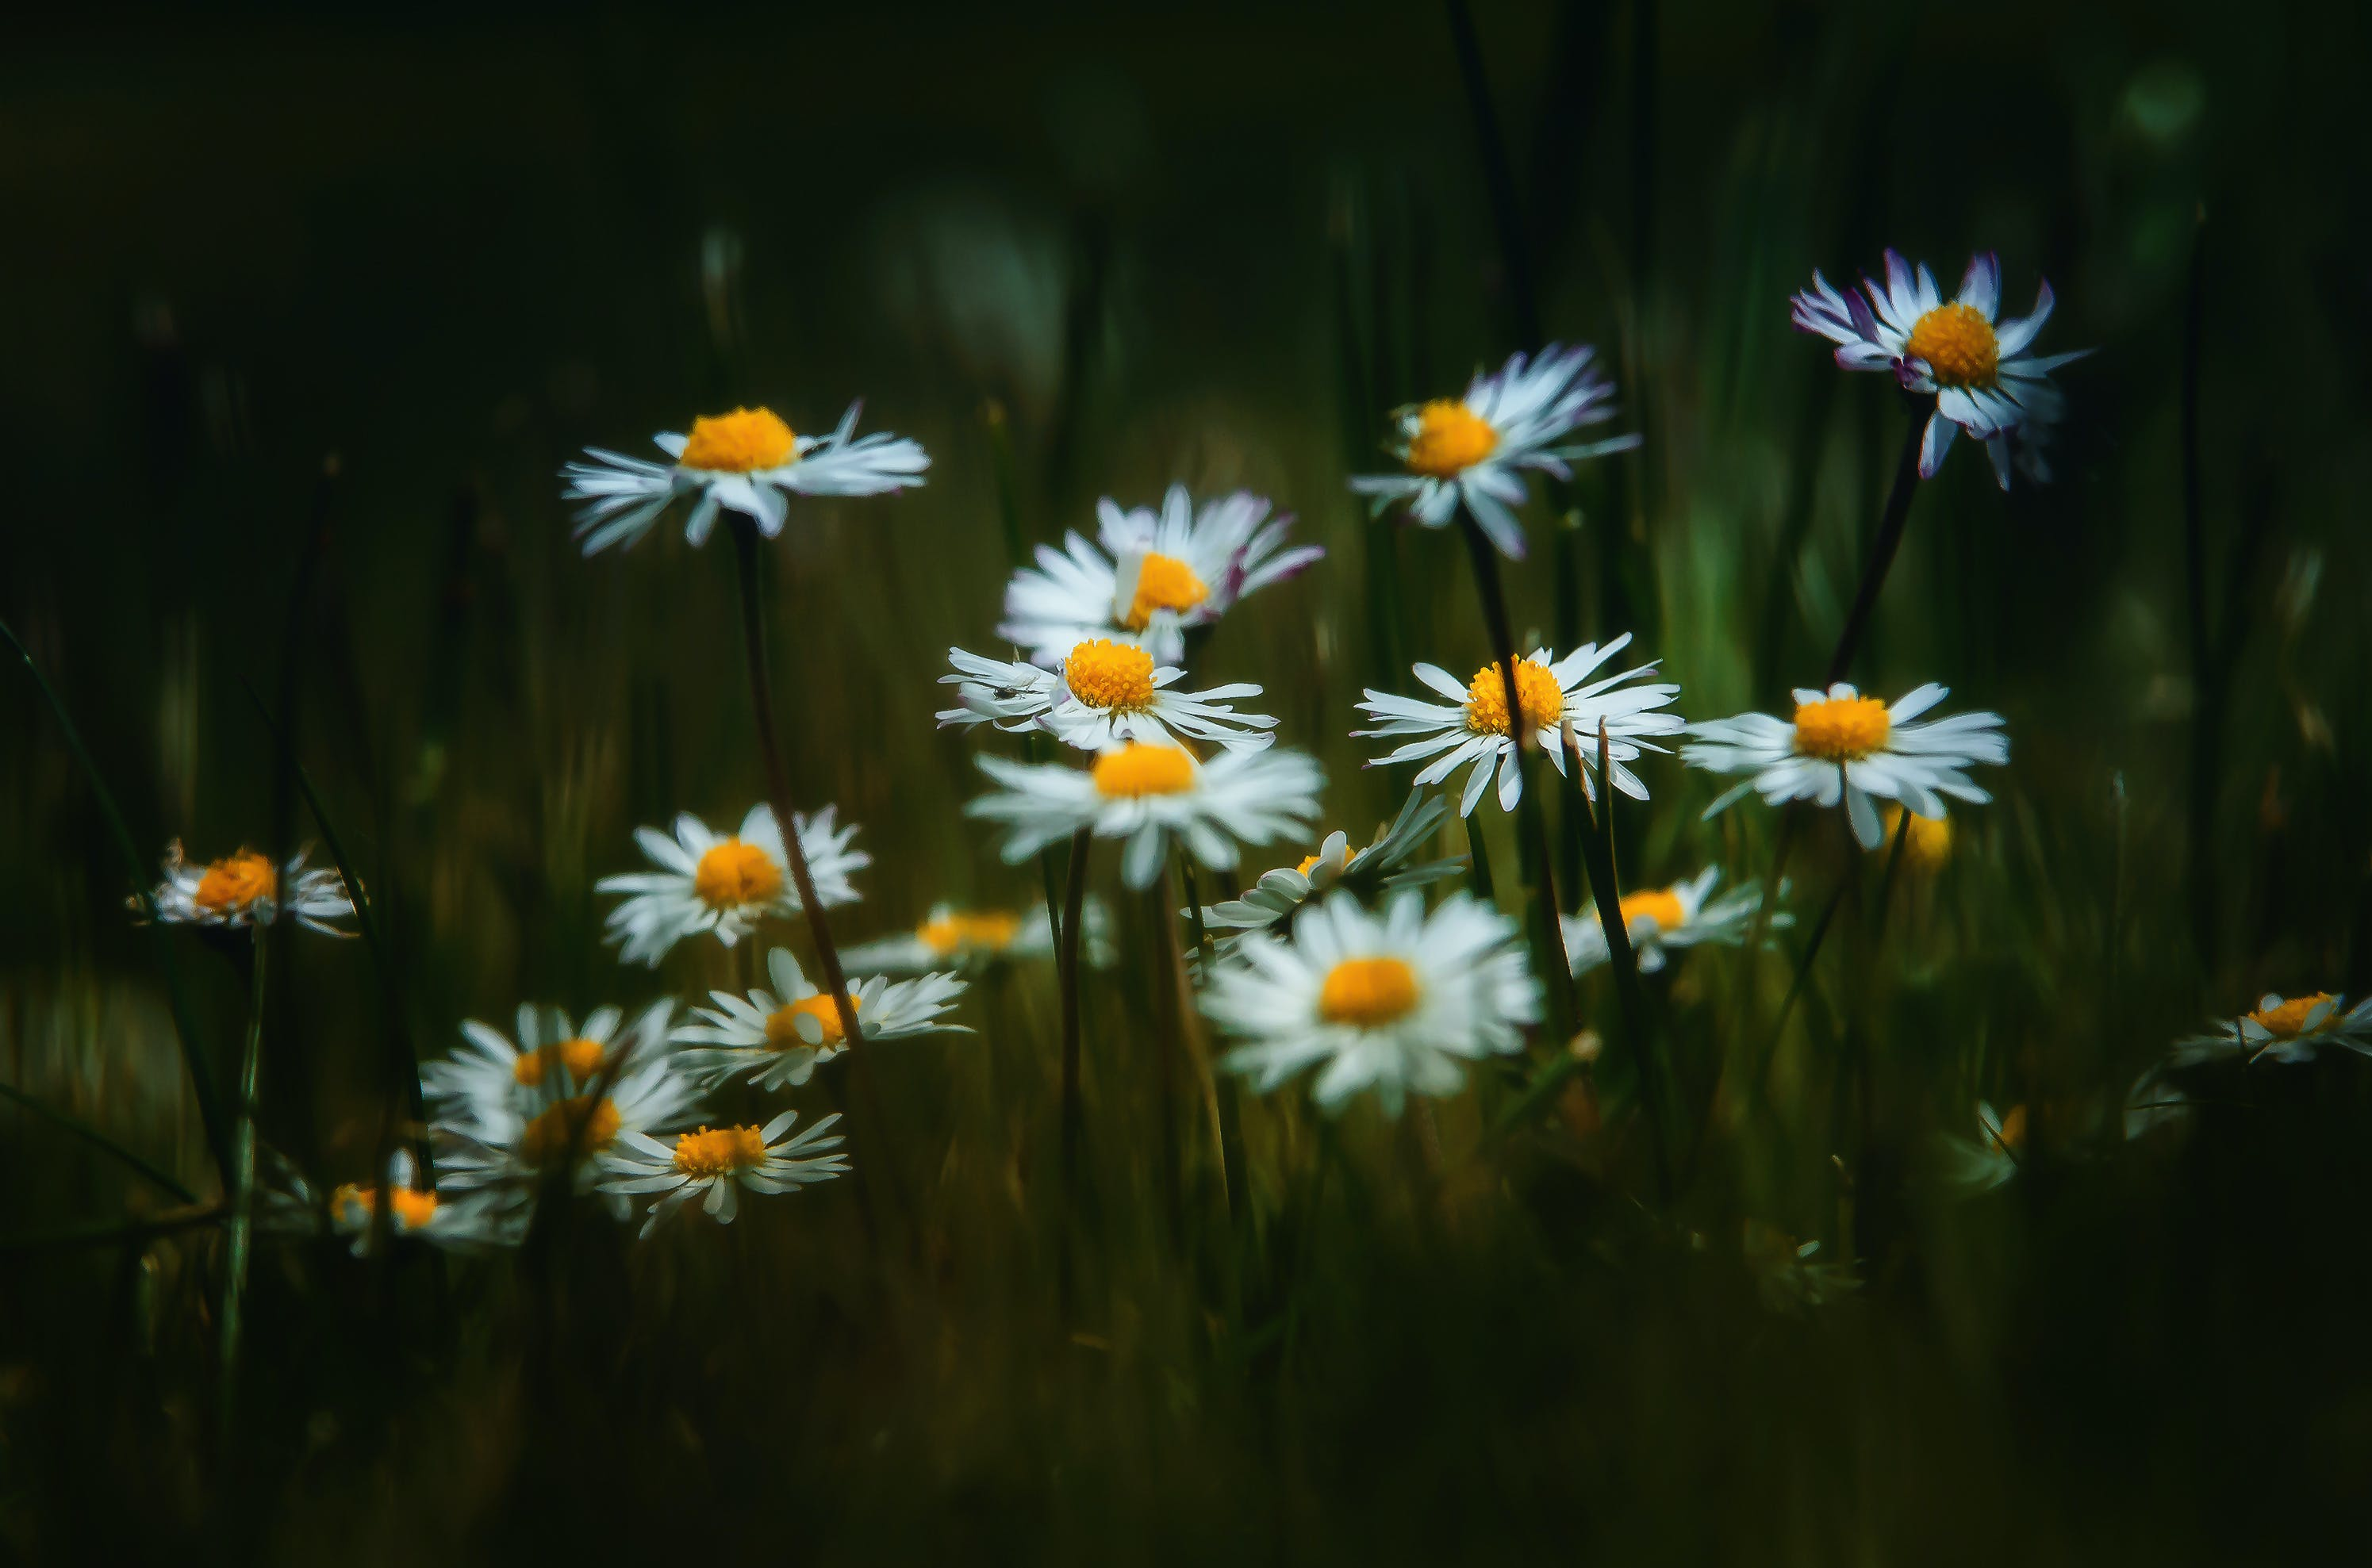 Selective Focus Photography of Daisy Flowers